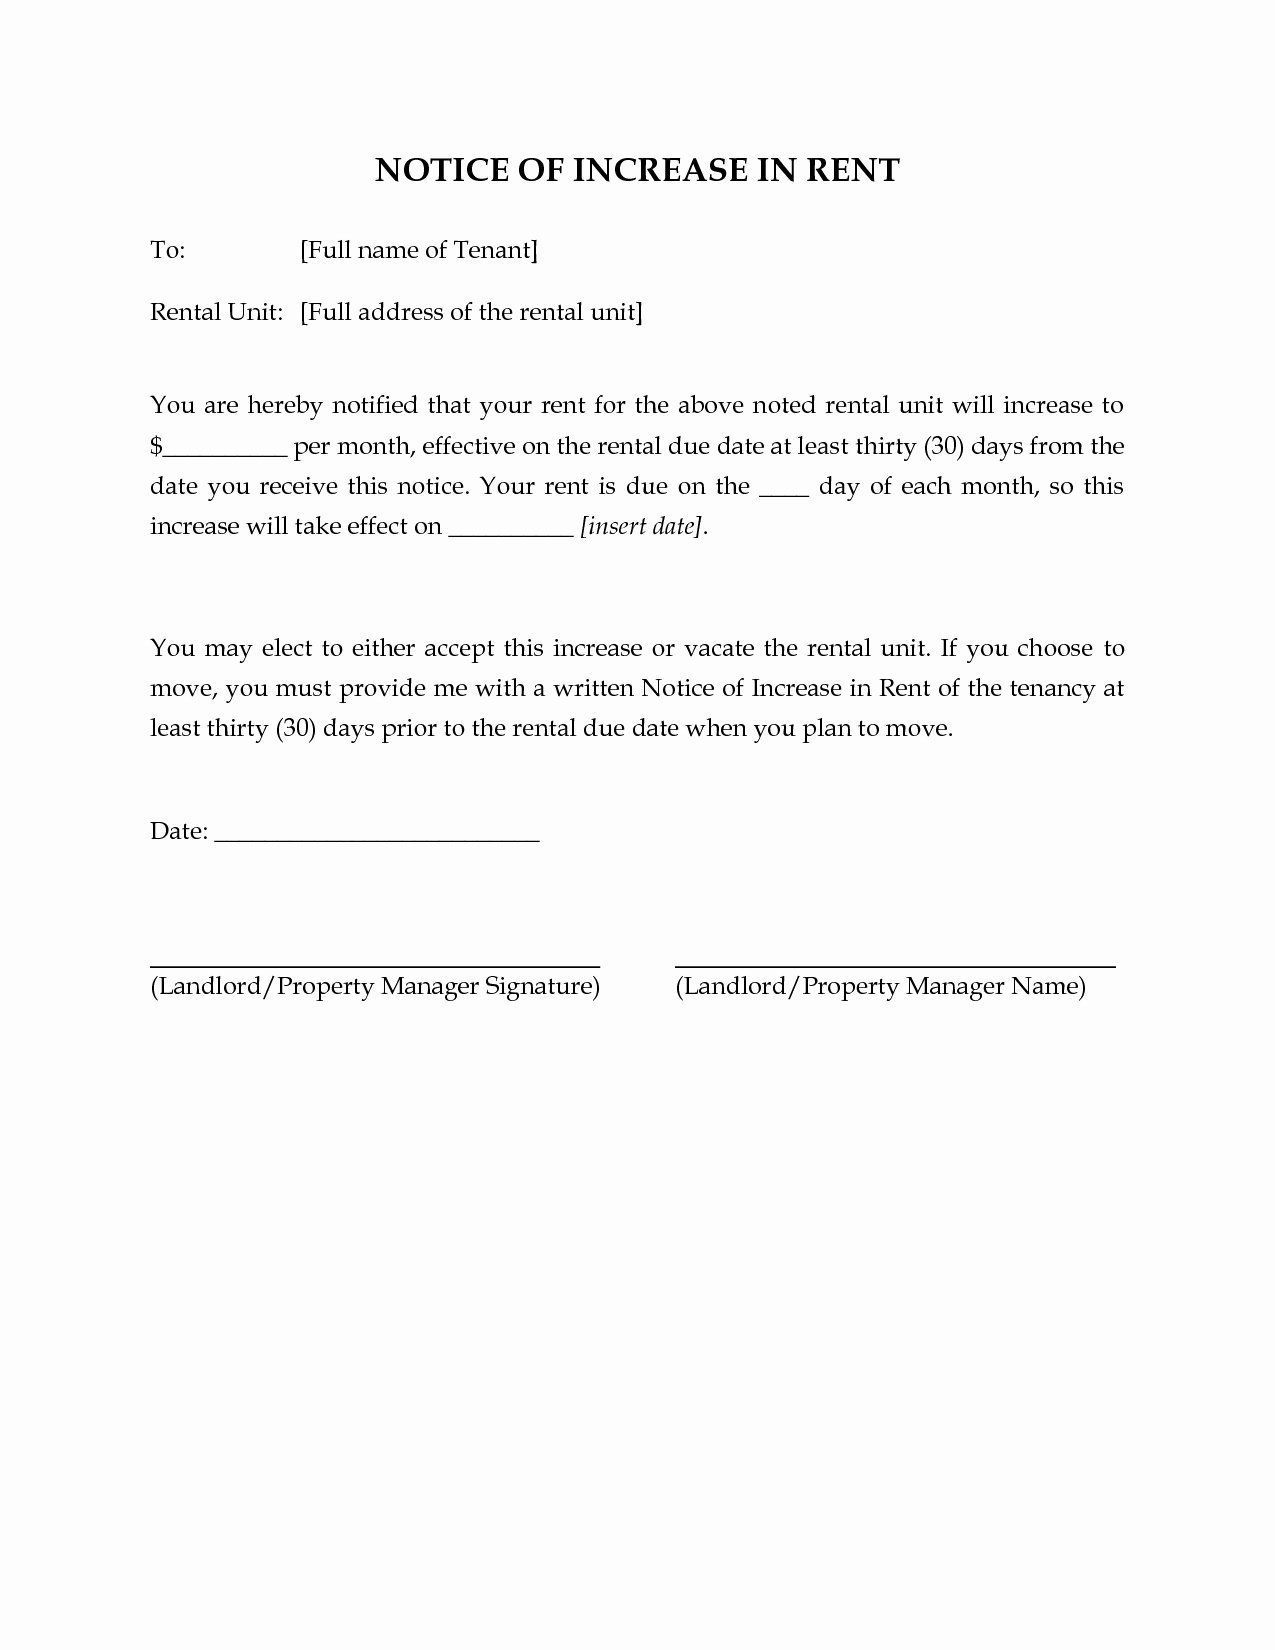 Free Rent Increase Letter Beautiful 16 Rent Increase Letter to Tenant Template Collection